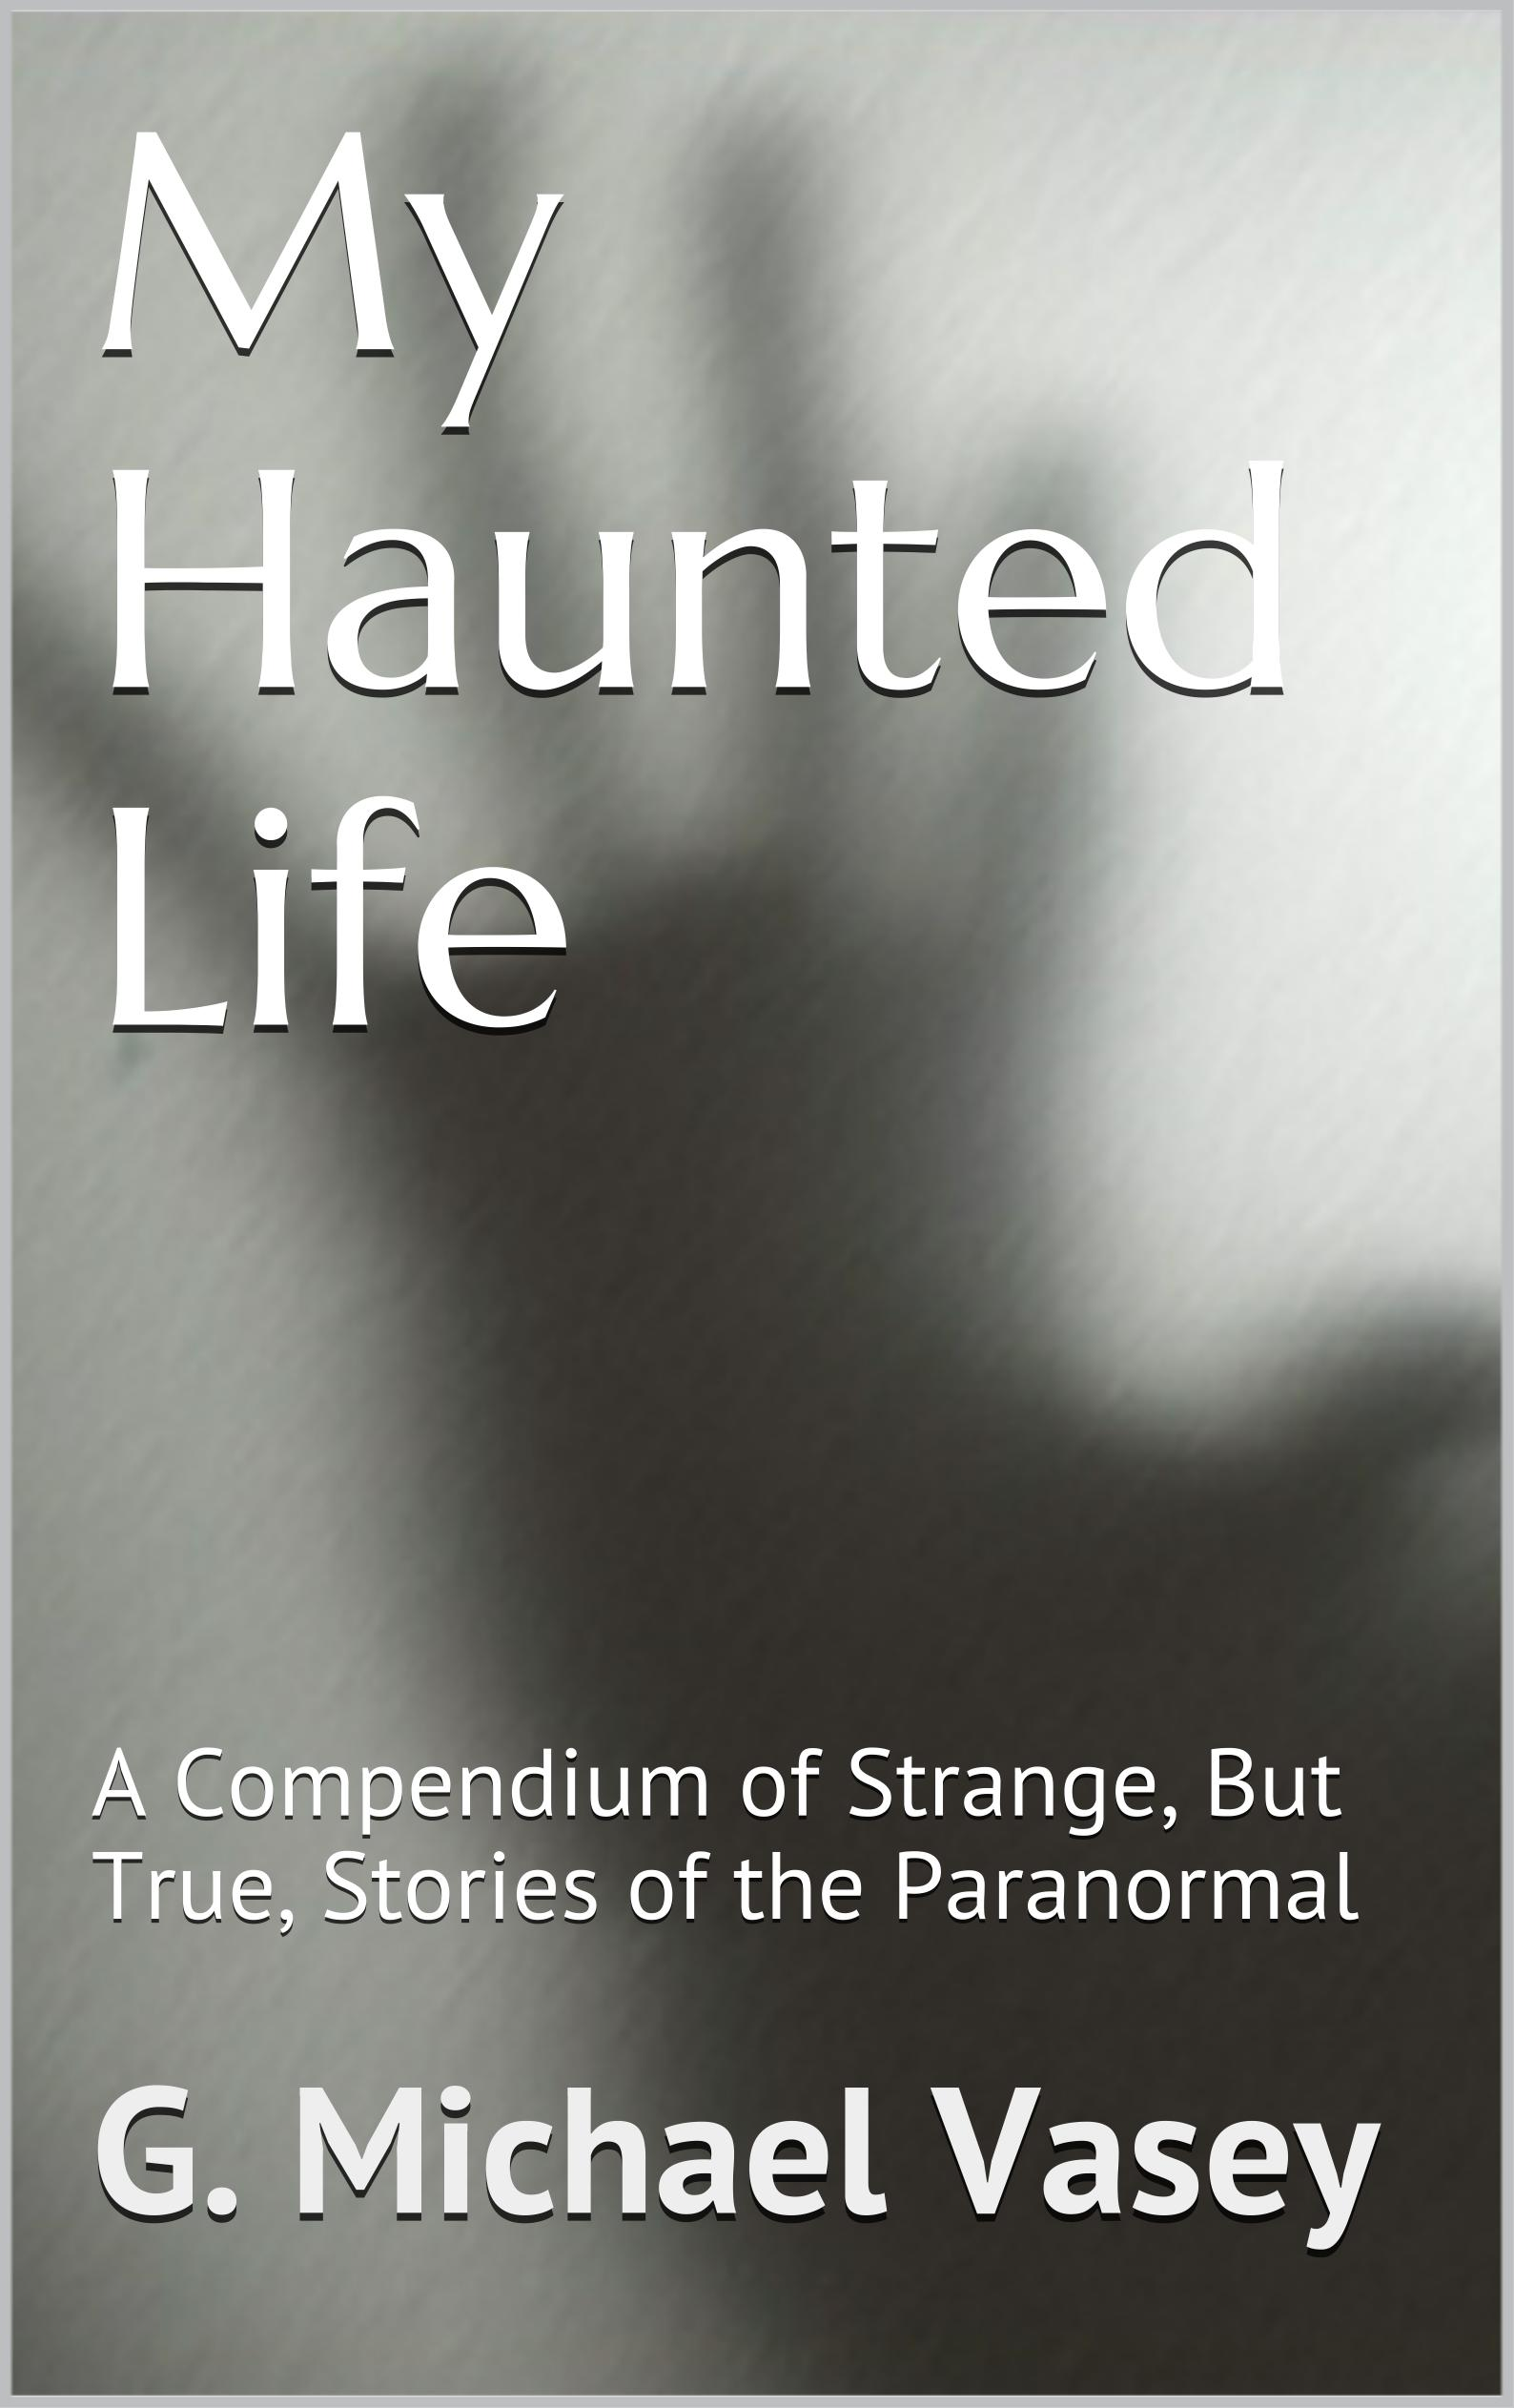 My Haunted Life – A Compendium of Strange (but True) Stories of the Paranormal